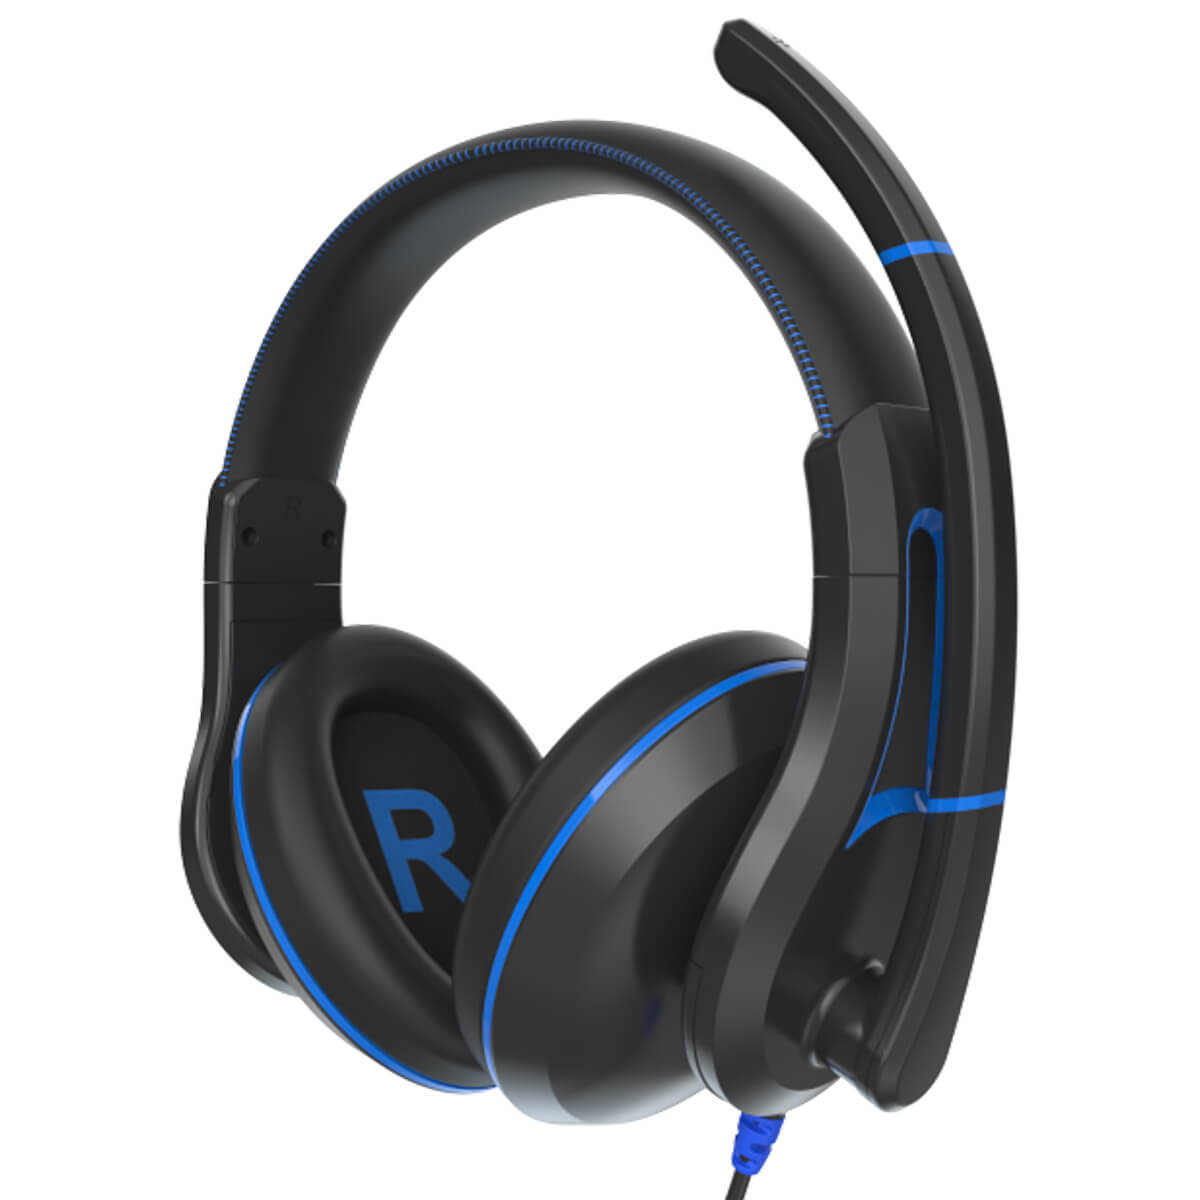 Ultra Durable Pro Headsets with 3.5mm plug - Learning Headphones